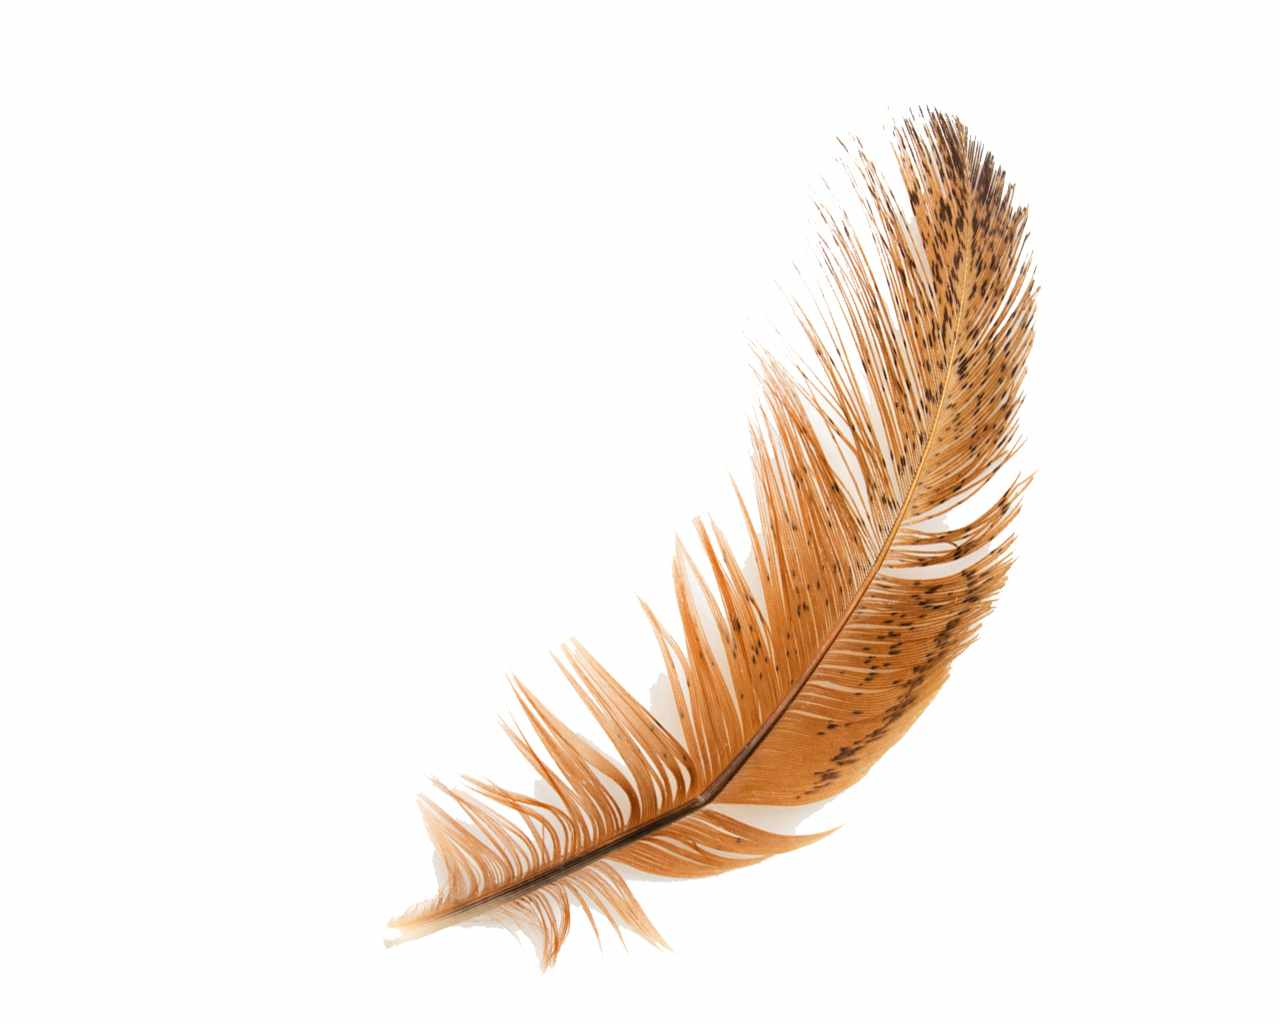 Feather High Definition Wallp